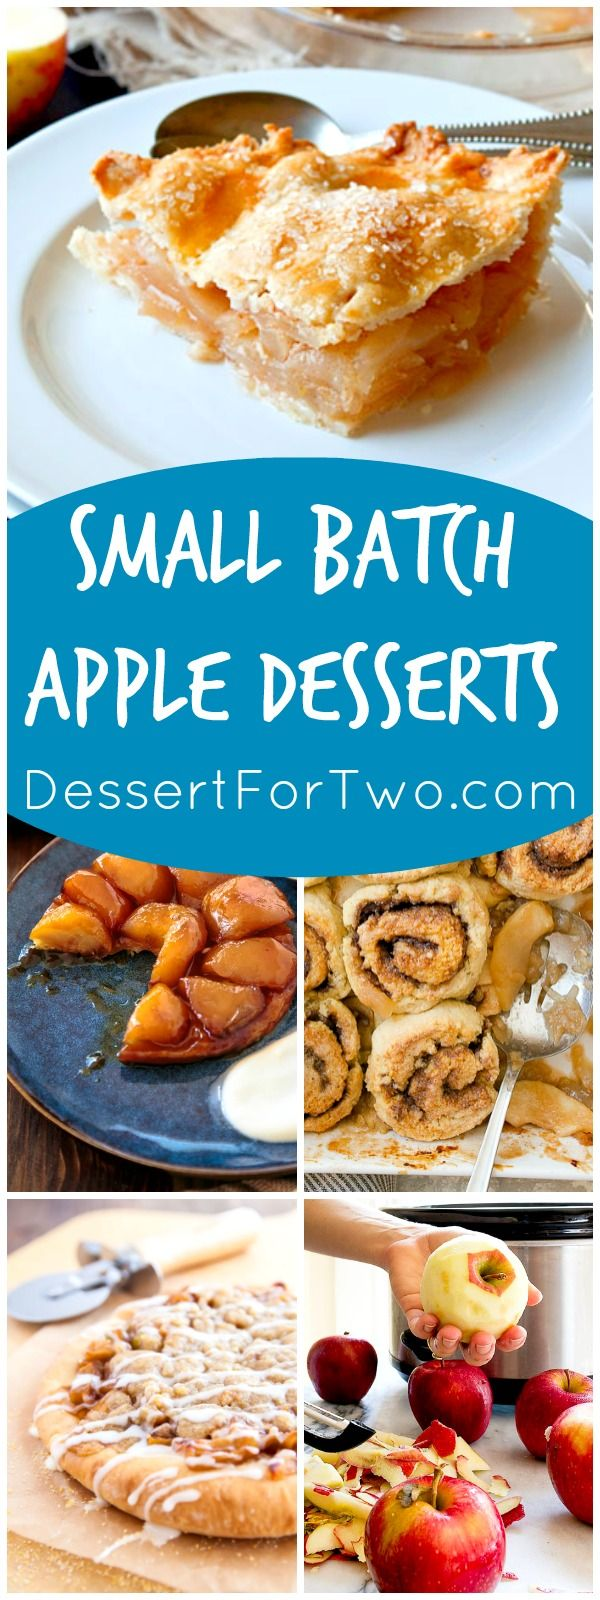 Easy desserts recipes for two